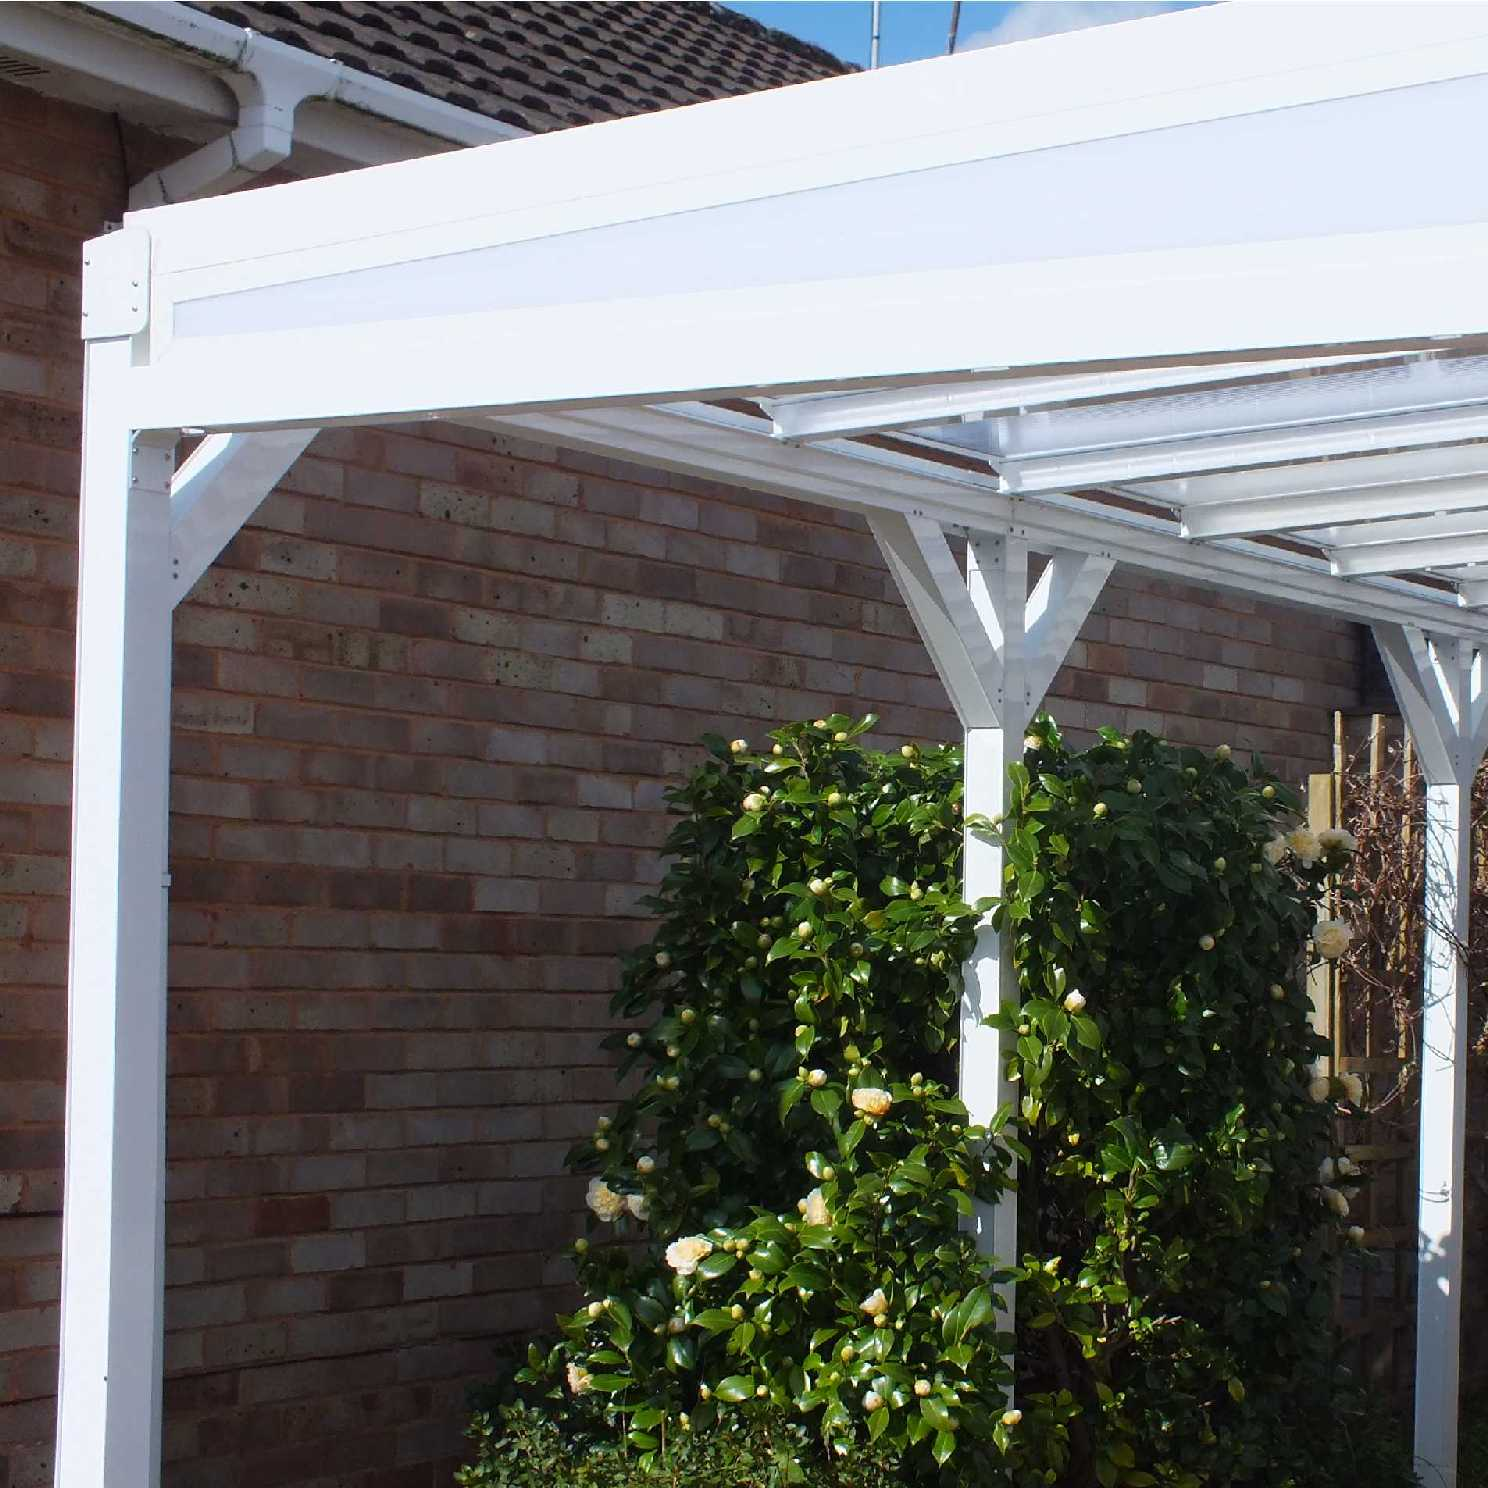 Omega Smart White Lean-To Canopy with 16mm Polycarbonate Glazing - 12.0m (W) x 3.0m (P), (5) Supporting Posts from Omega Build